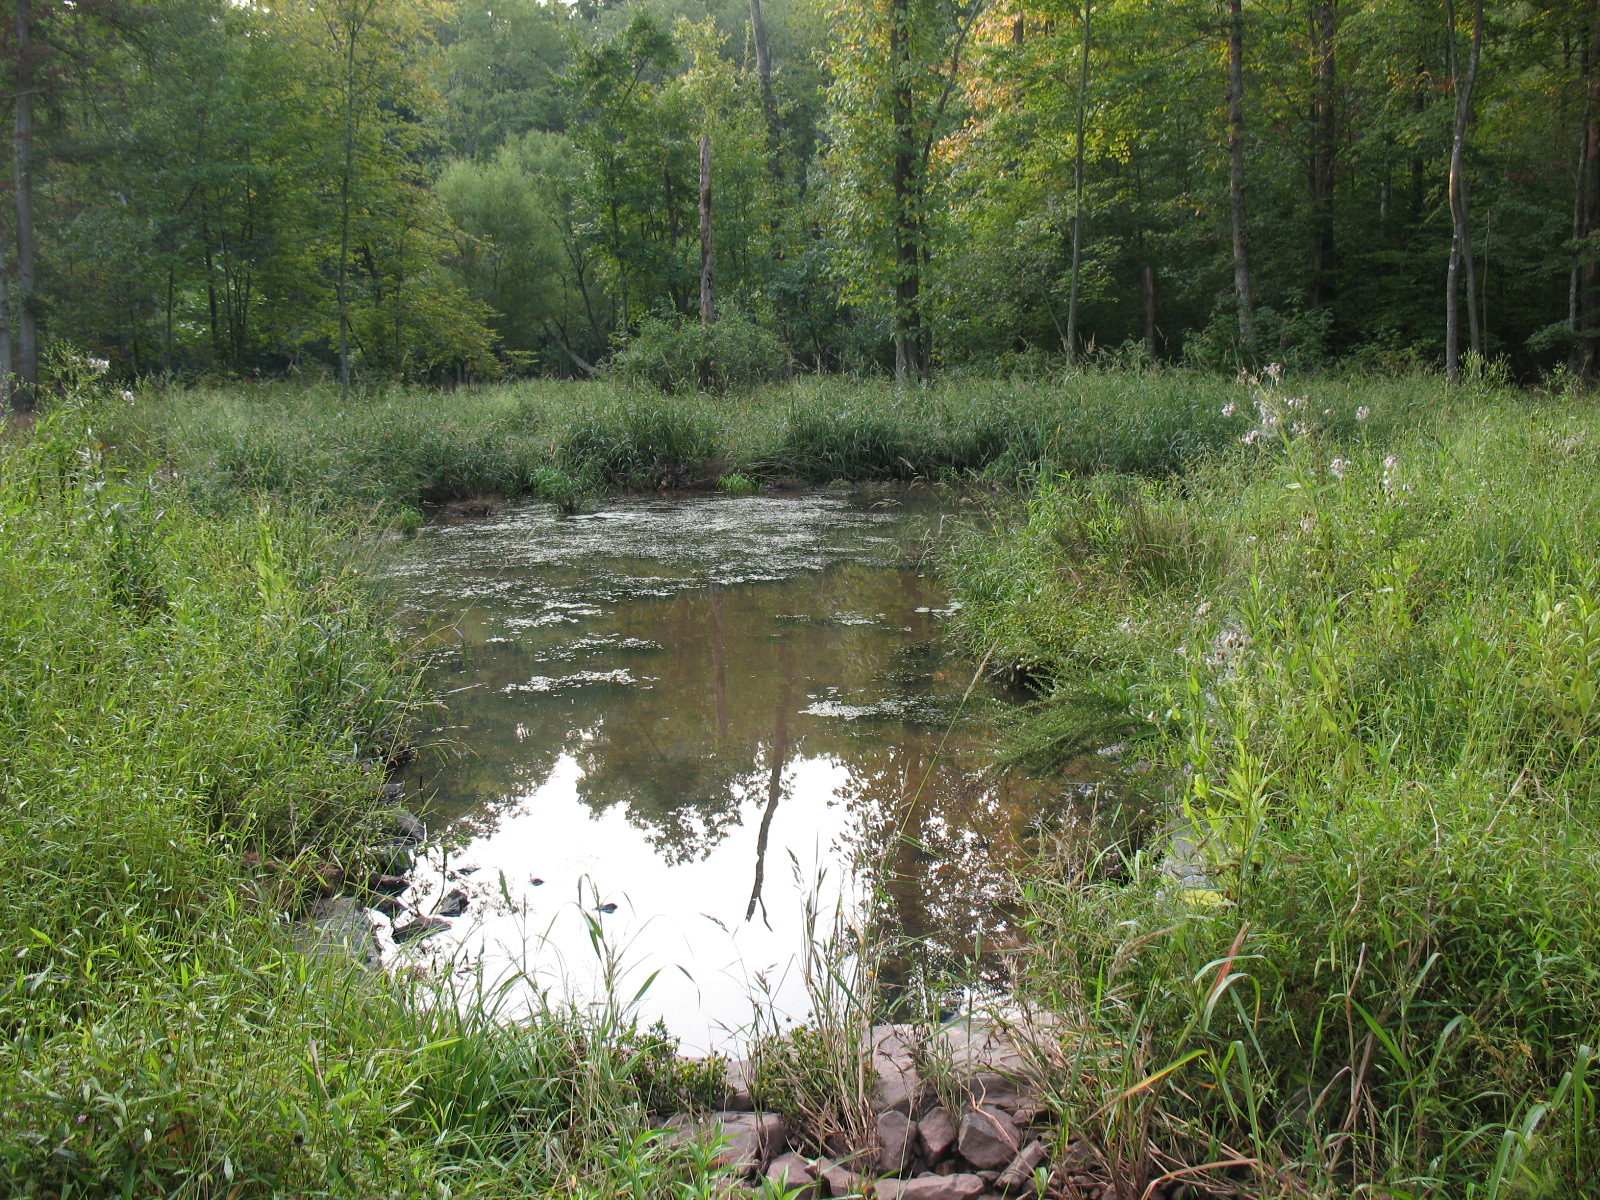 Looking downstream at the level s    preader - which transforms concentrated streamflow to sheet flow to protect an existing in-line wetland area from potential erosion - 1 year after the stream restoration construction.